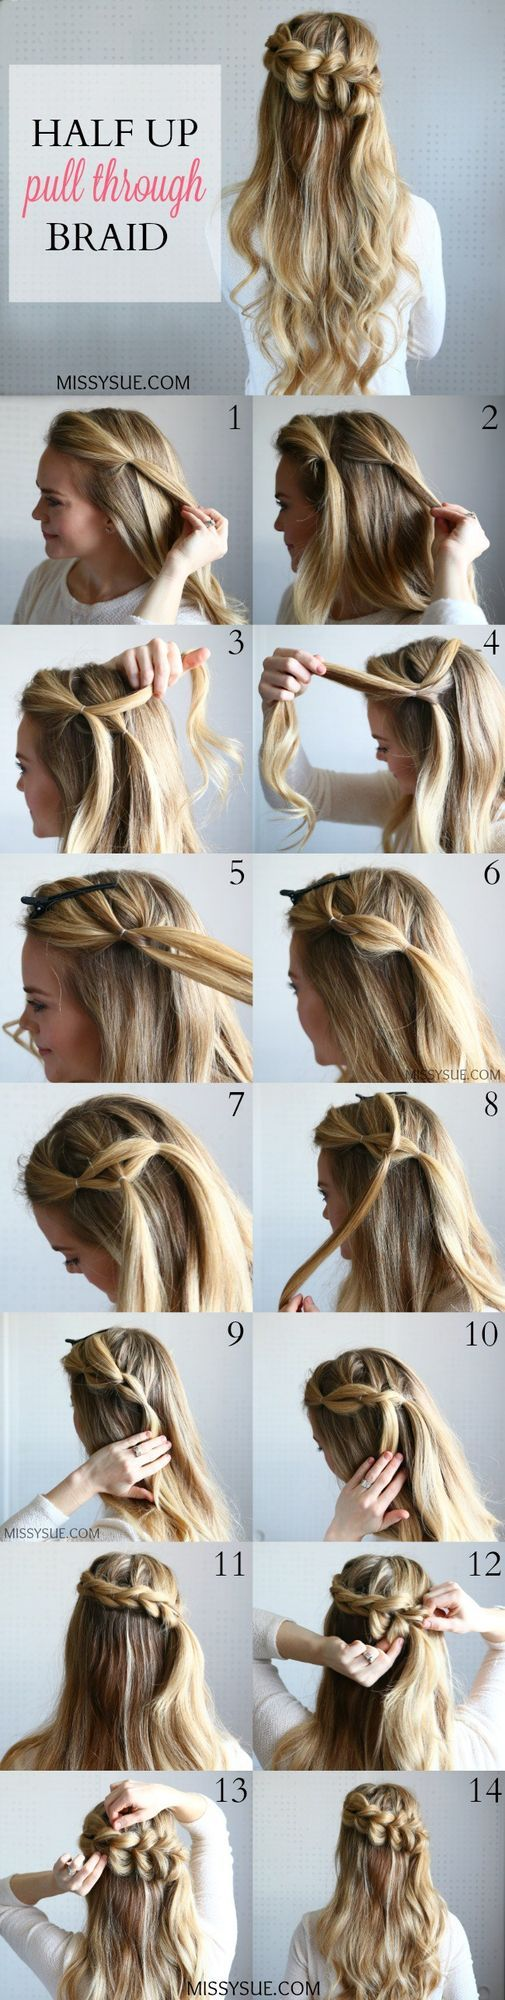 Great new! The hottest braid right now isn't even a braid at all! It doesn't get much easier than that! This pull-through braid is so easy because it's really just a bunch of ponytails wrapped around